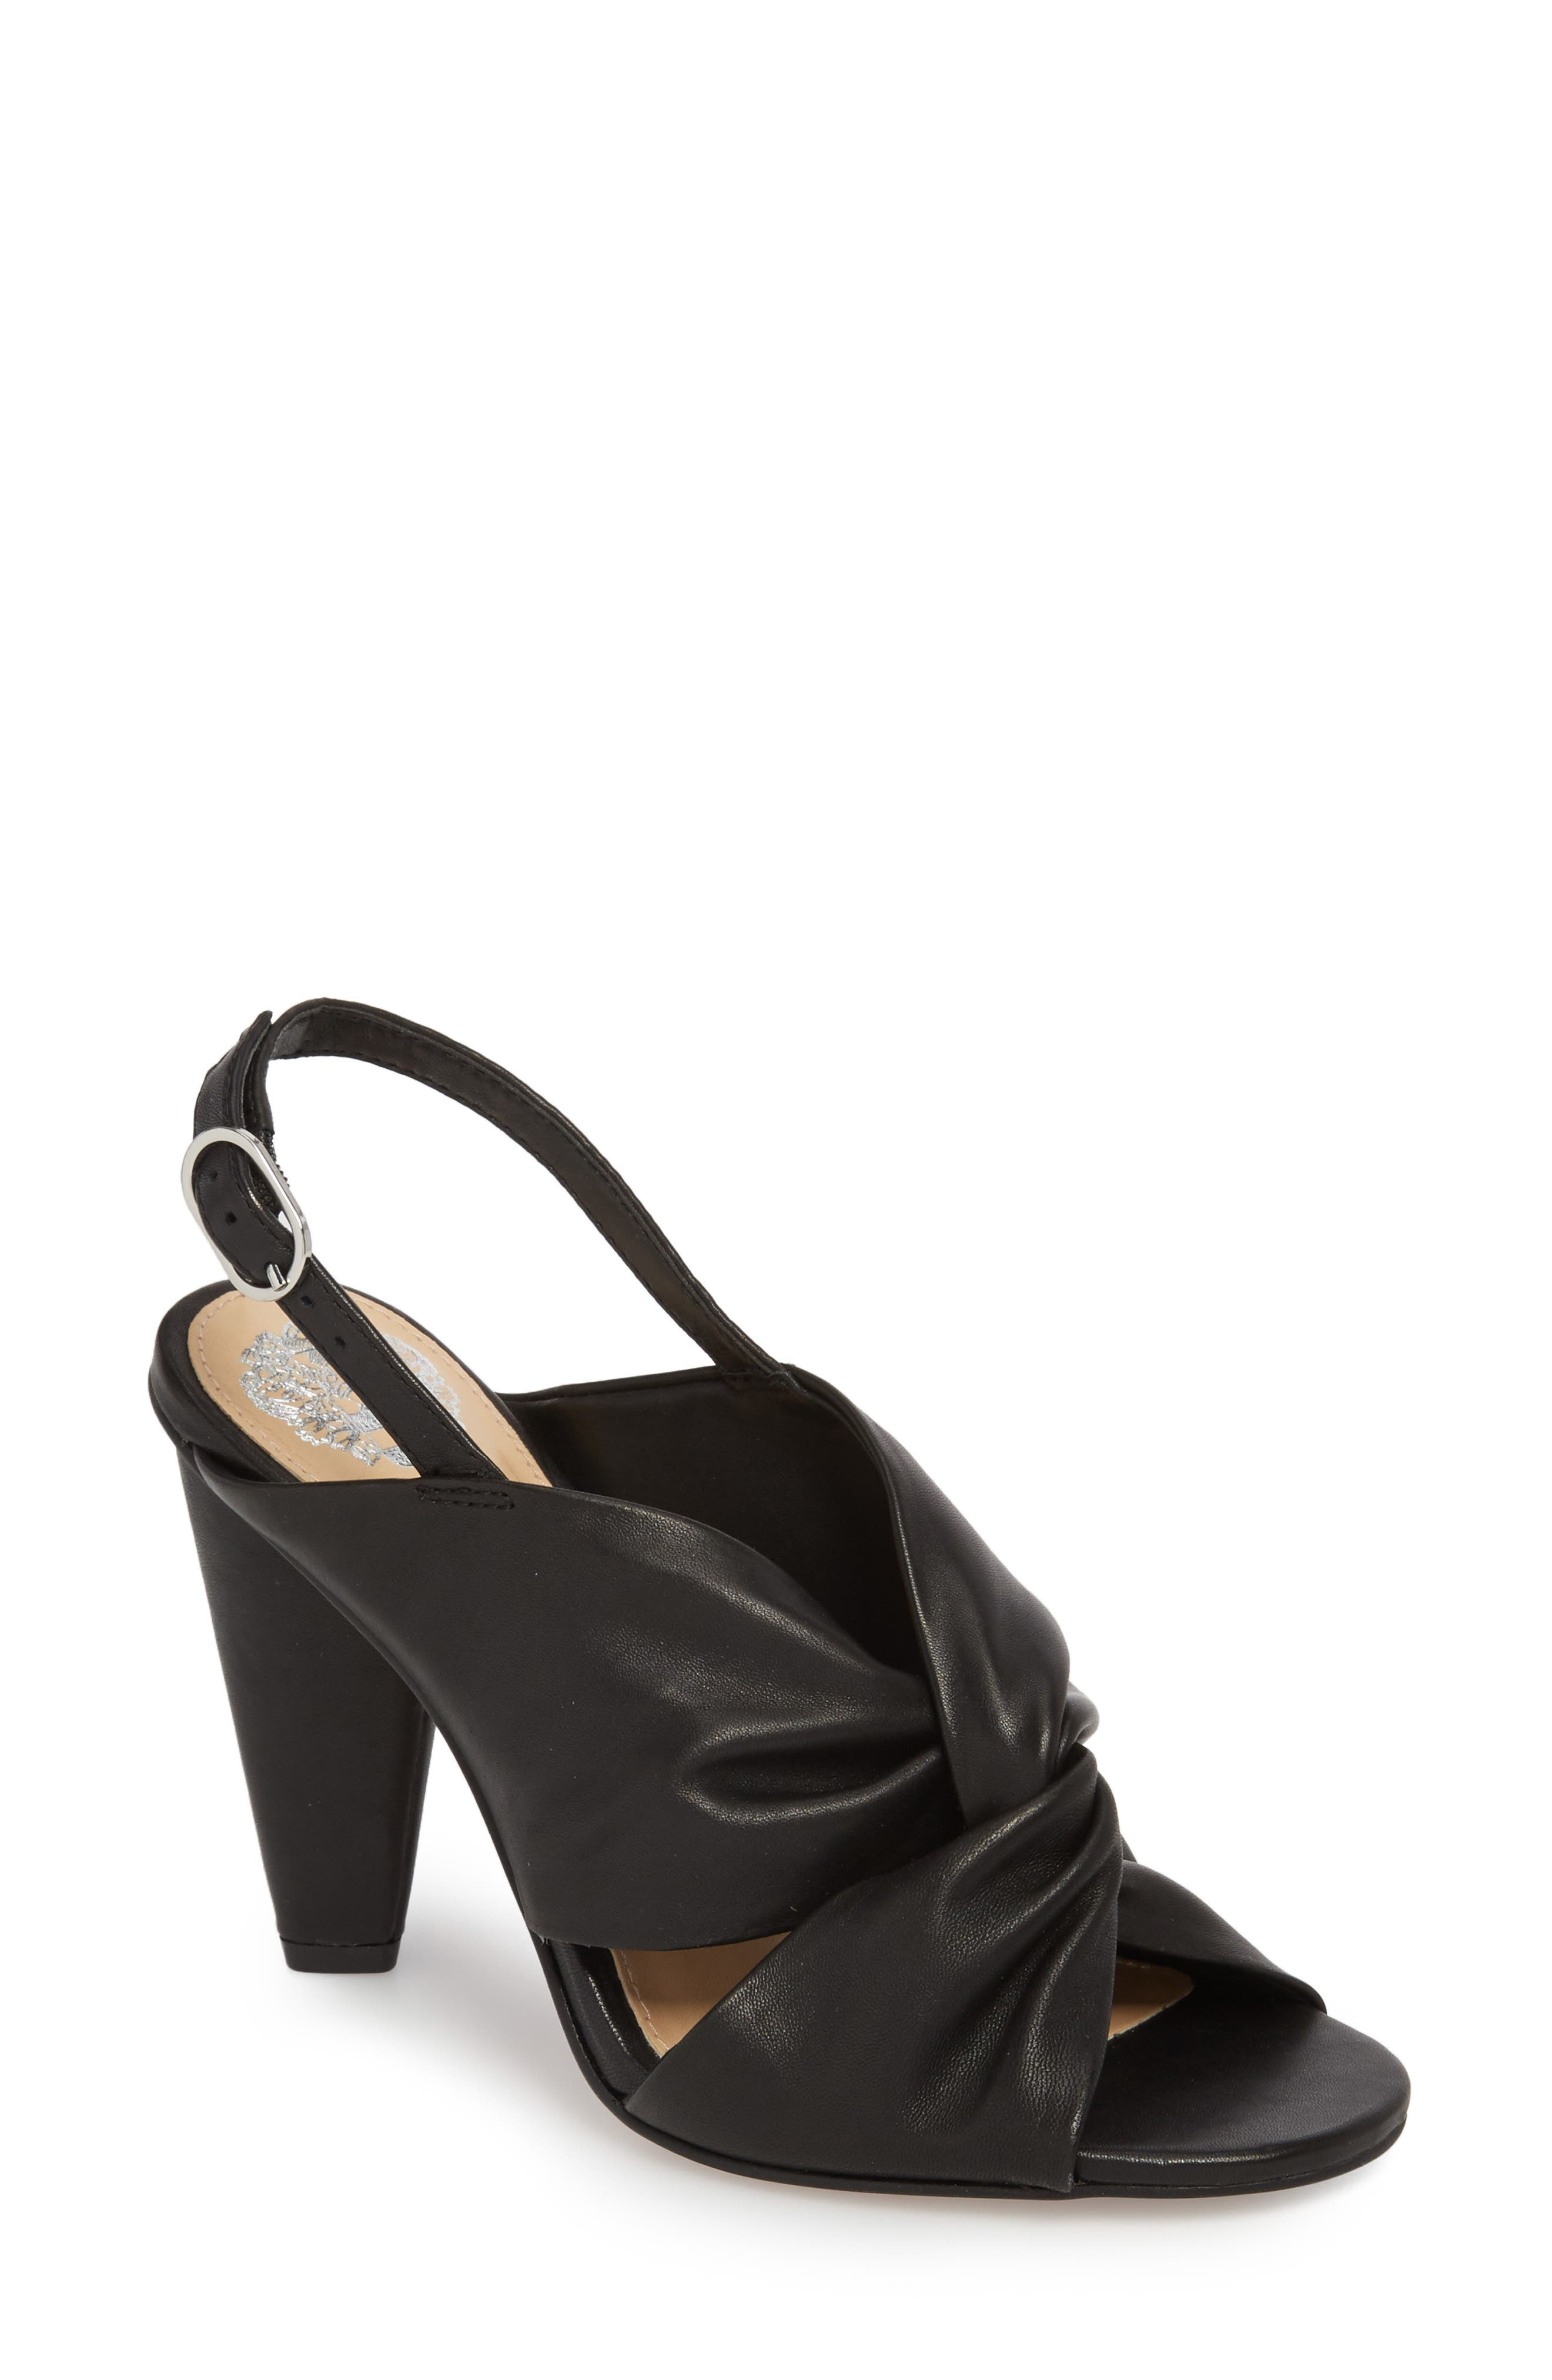 Kattie Slingback Sandal,                         Main,                         color, BLACK LEATHER